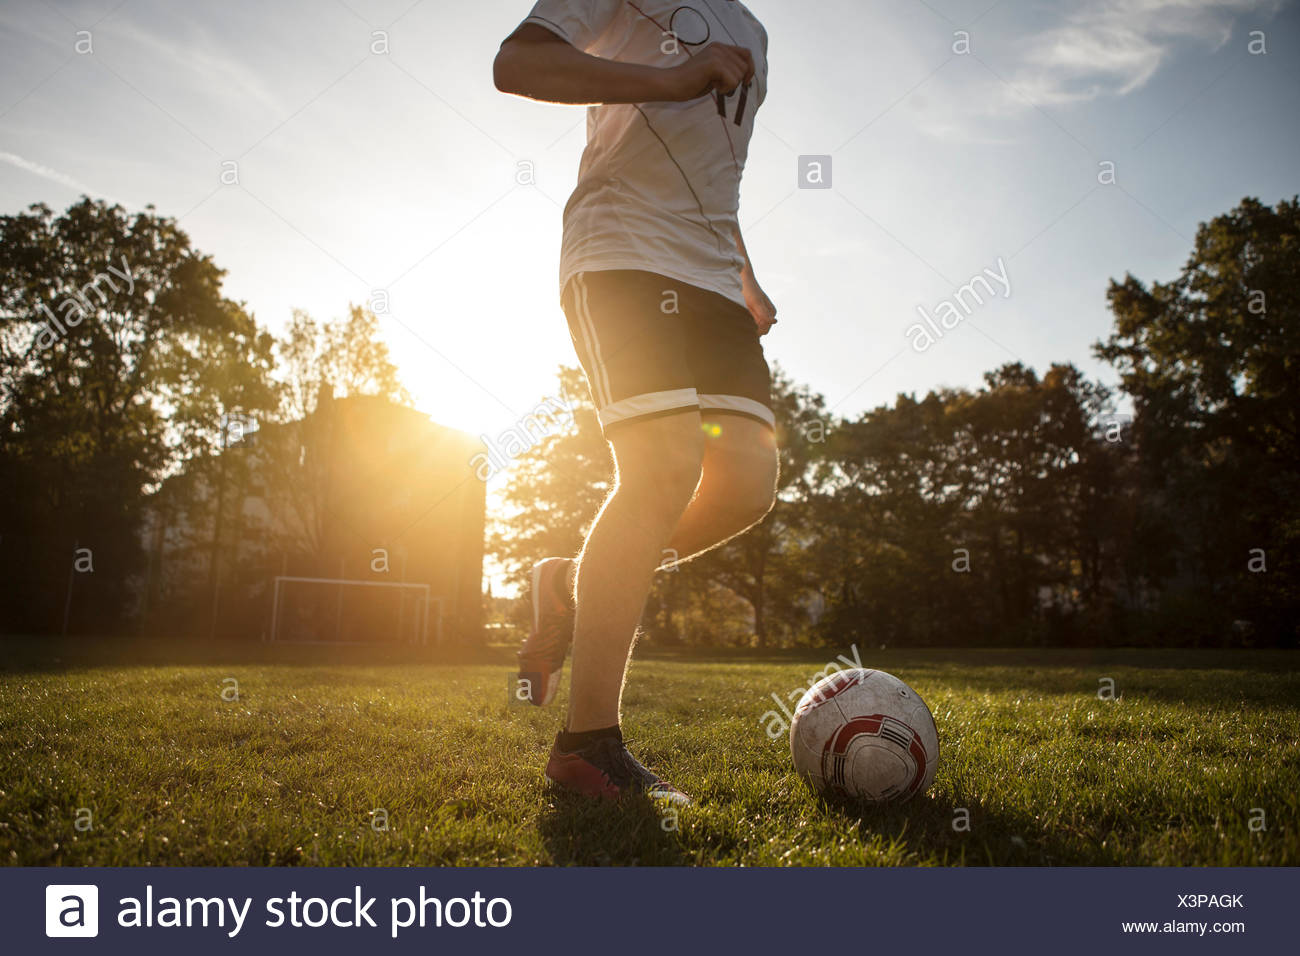 Teenager playing soccer on soccer pitch - Stock Image